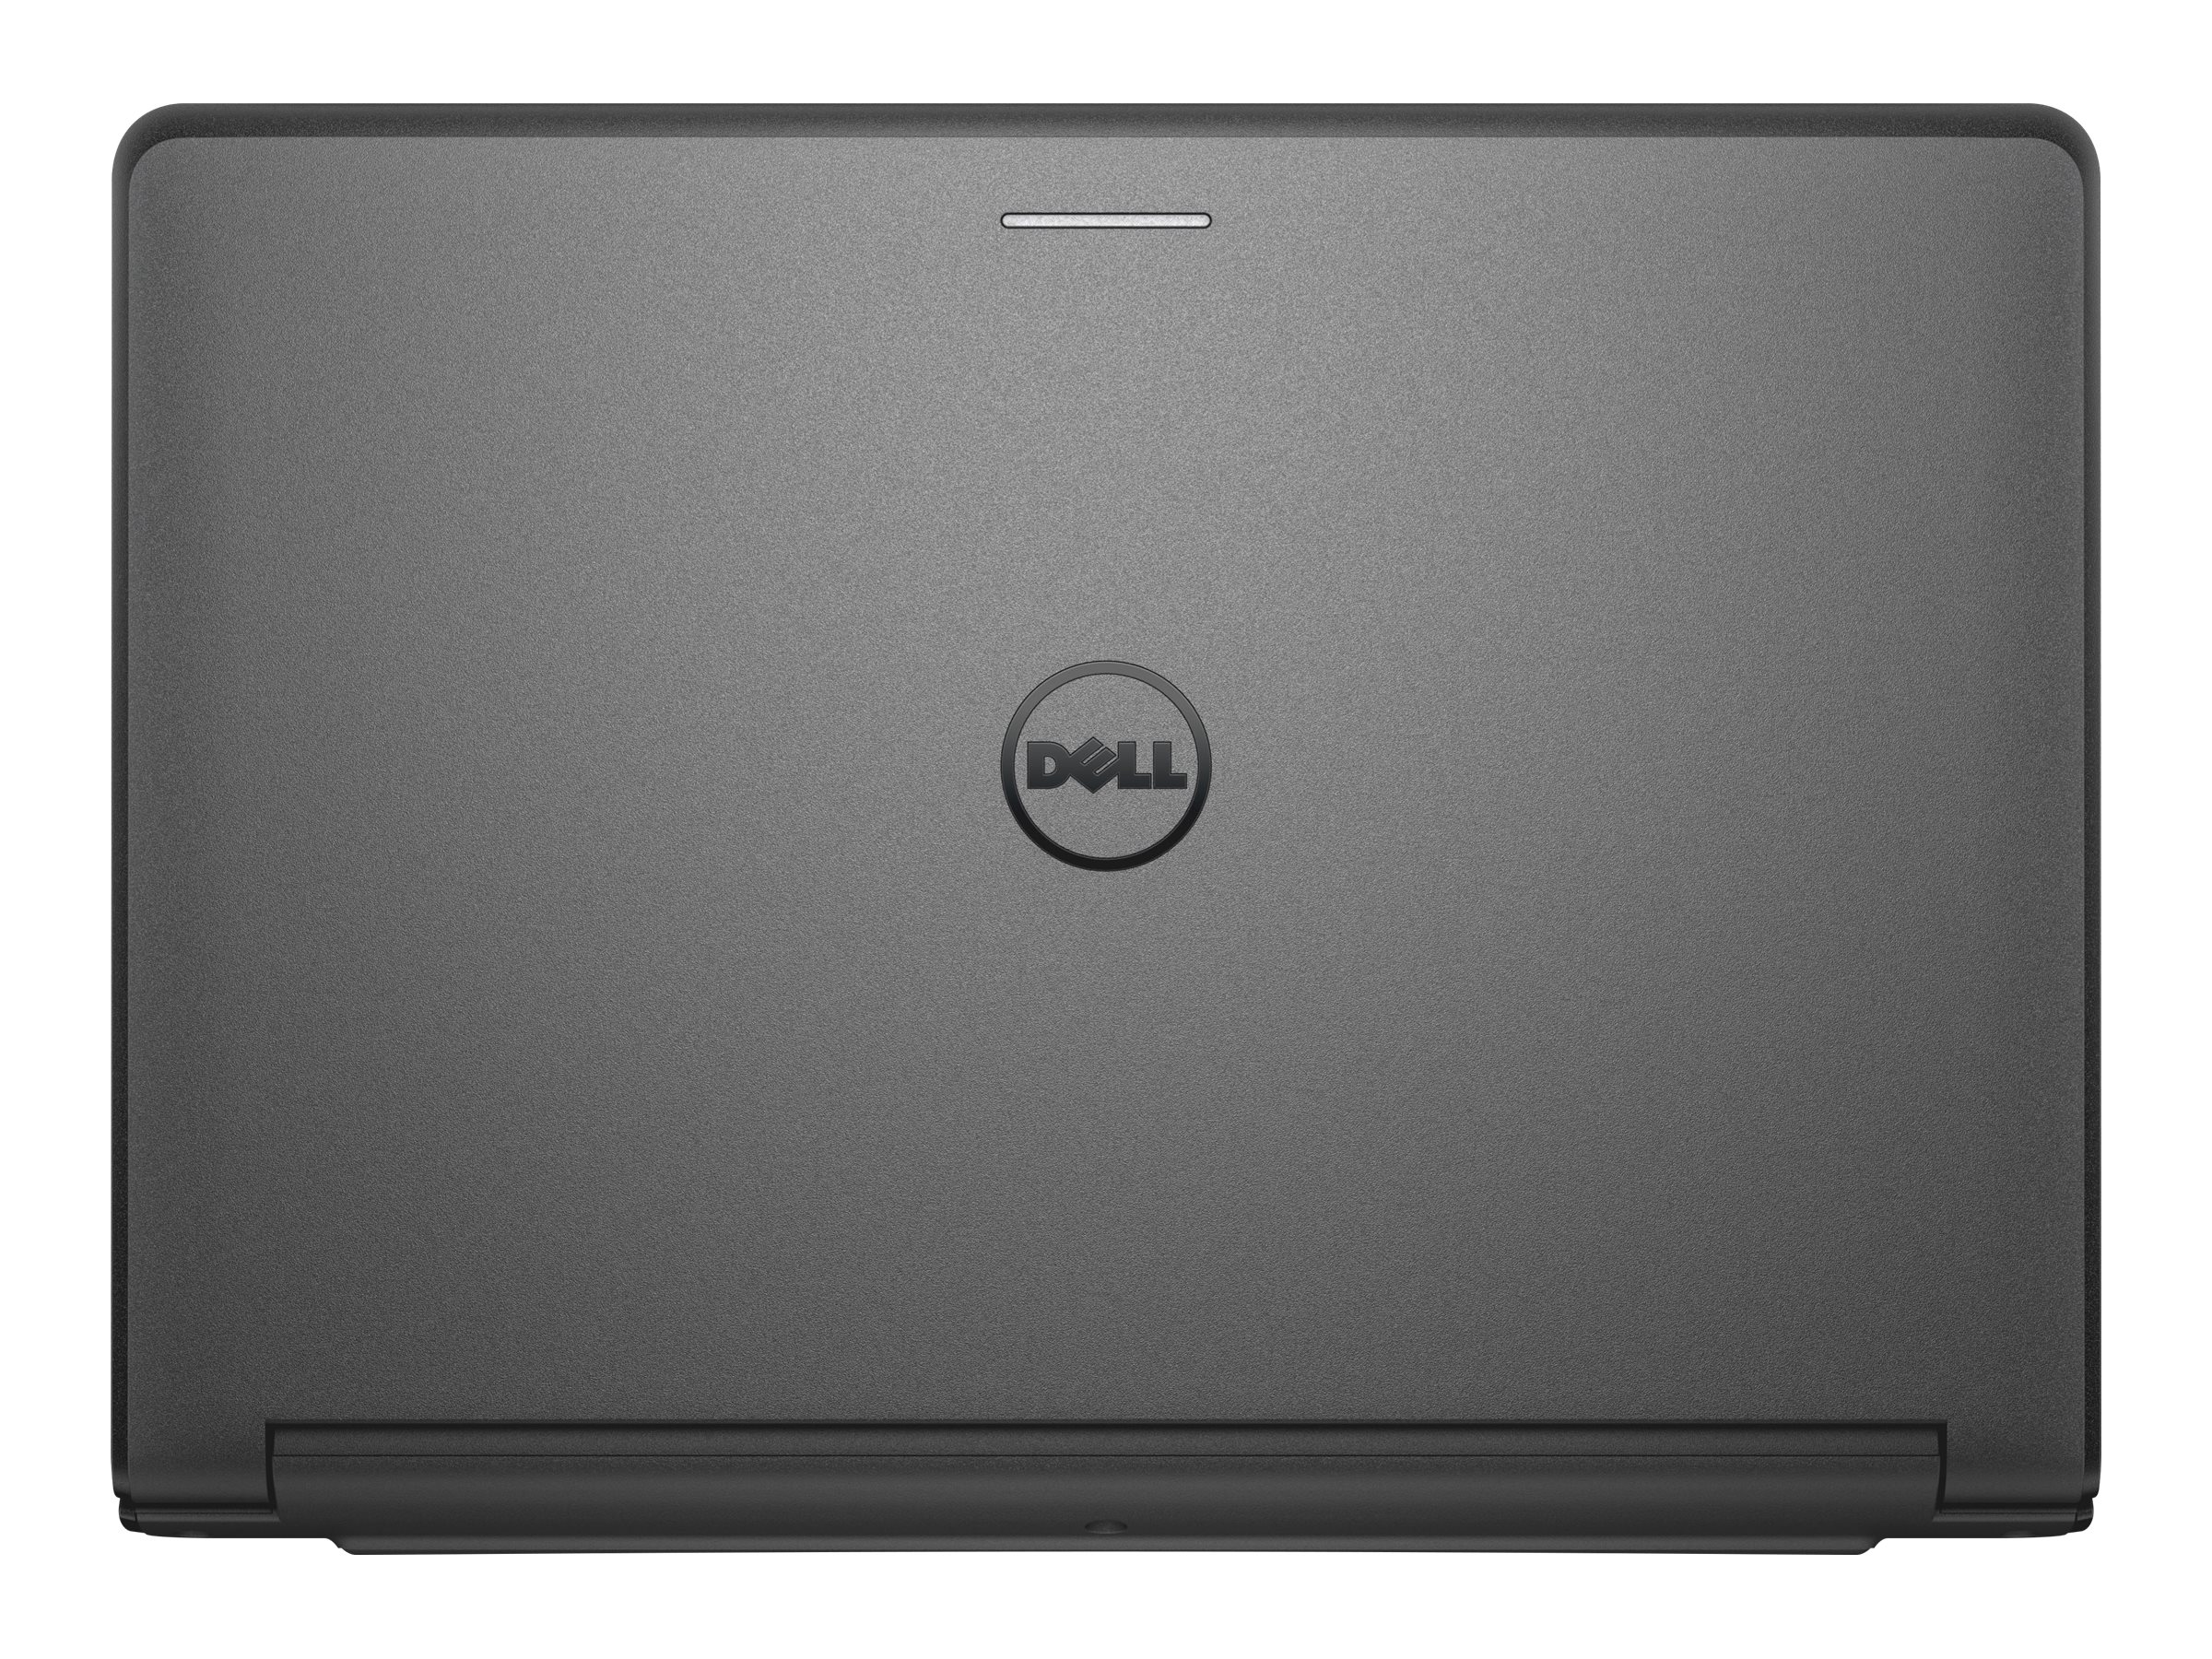 Dell LAT3160-1333BLK Image 3